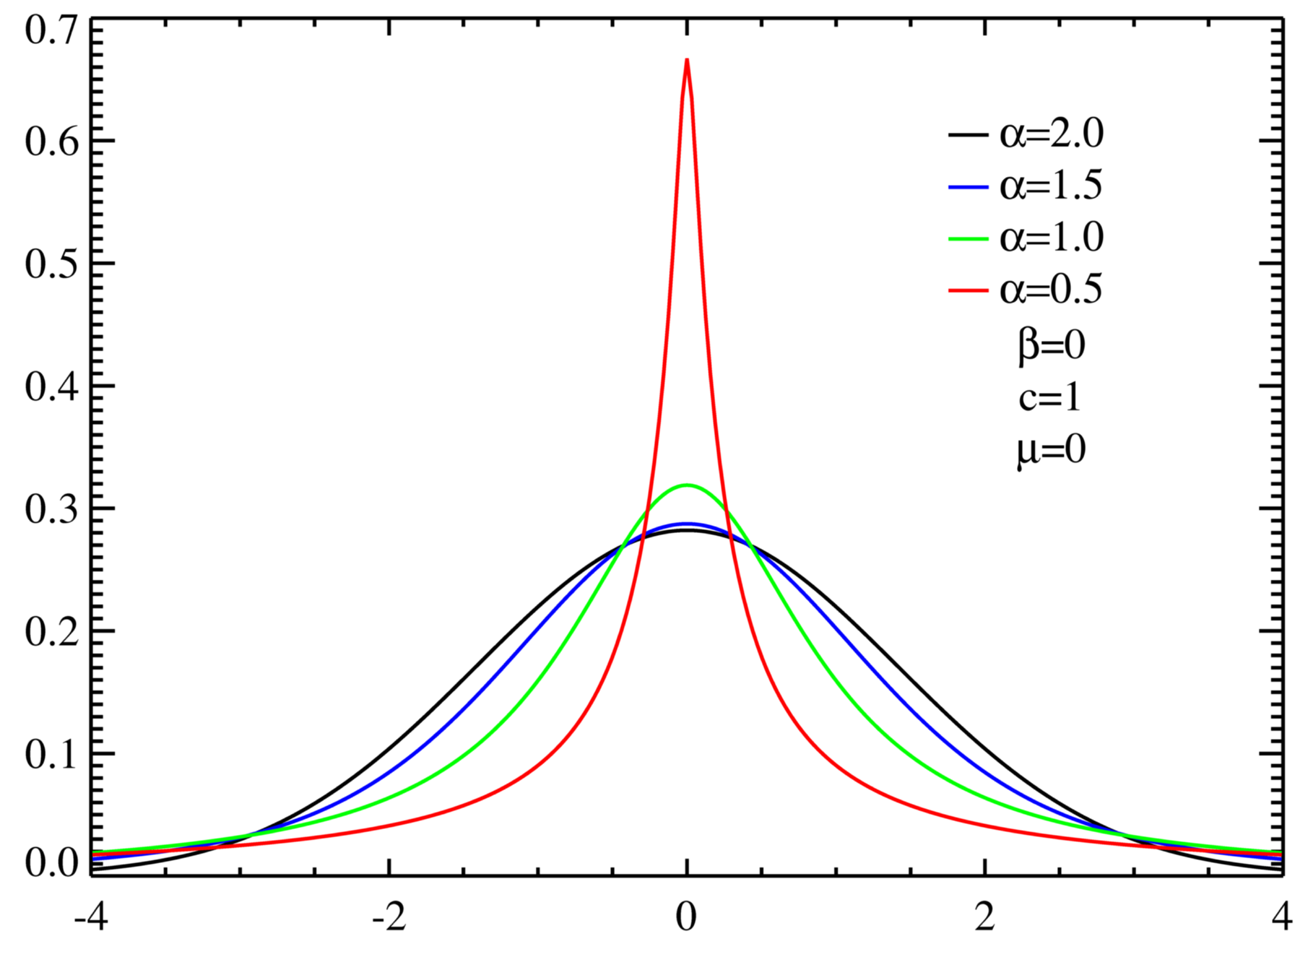 workplace applications of normal distribution The random variable x in the normal equation is called the normal random variablethe normal equation is the probability density function for the normal distribution the normal curve the graph of the normal distribution depends on two factors - the mean and the standard deviation.